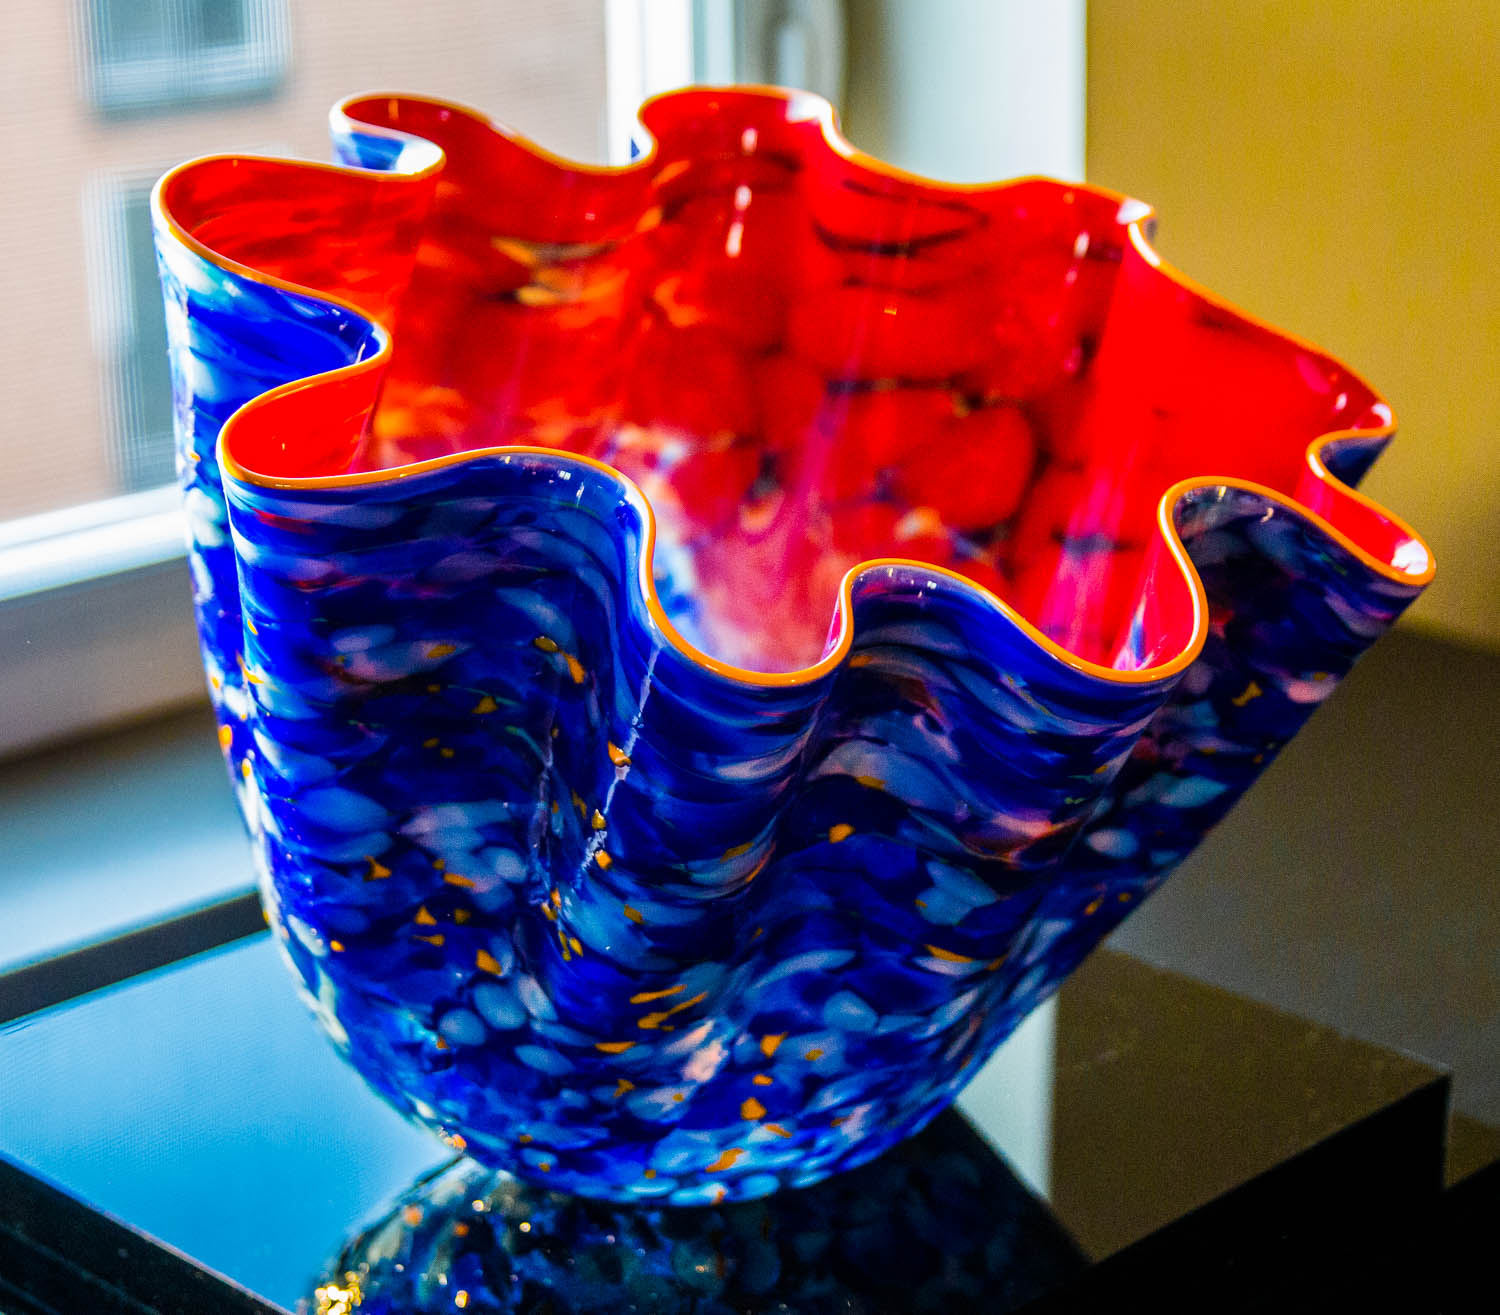 Nordic Blue Macchia Chihuly artwork by Dale Chihuly - art listed for sale on Artplode